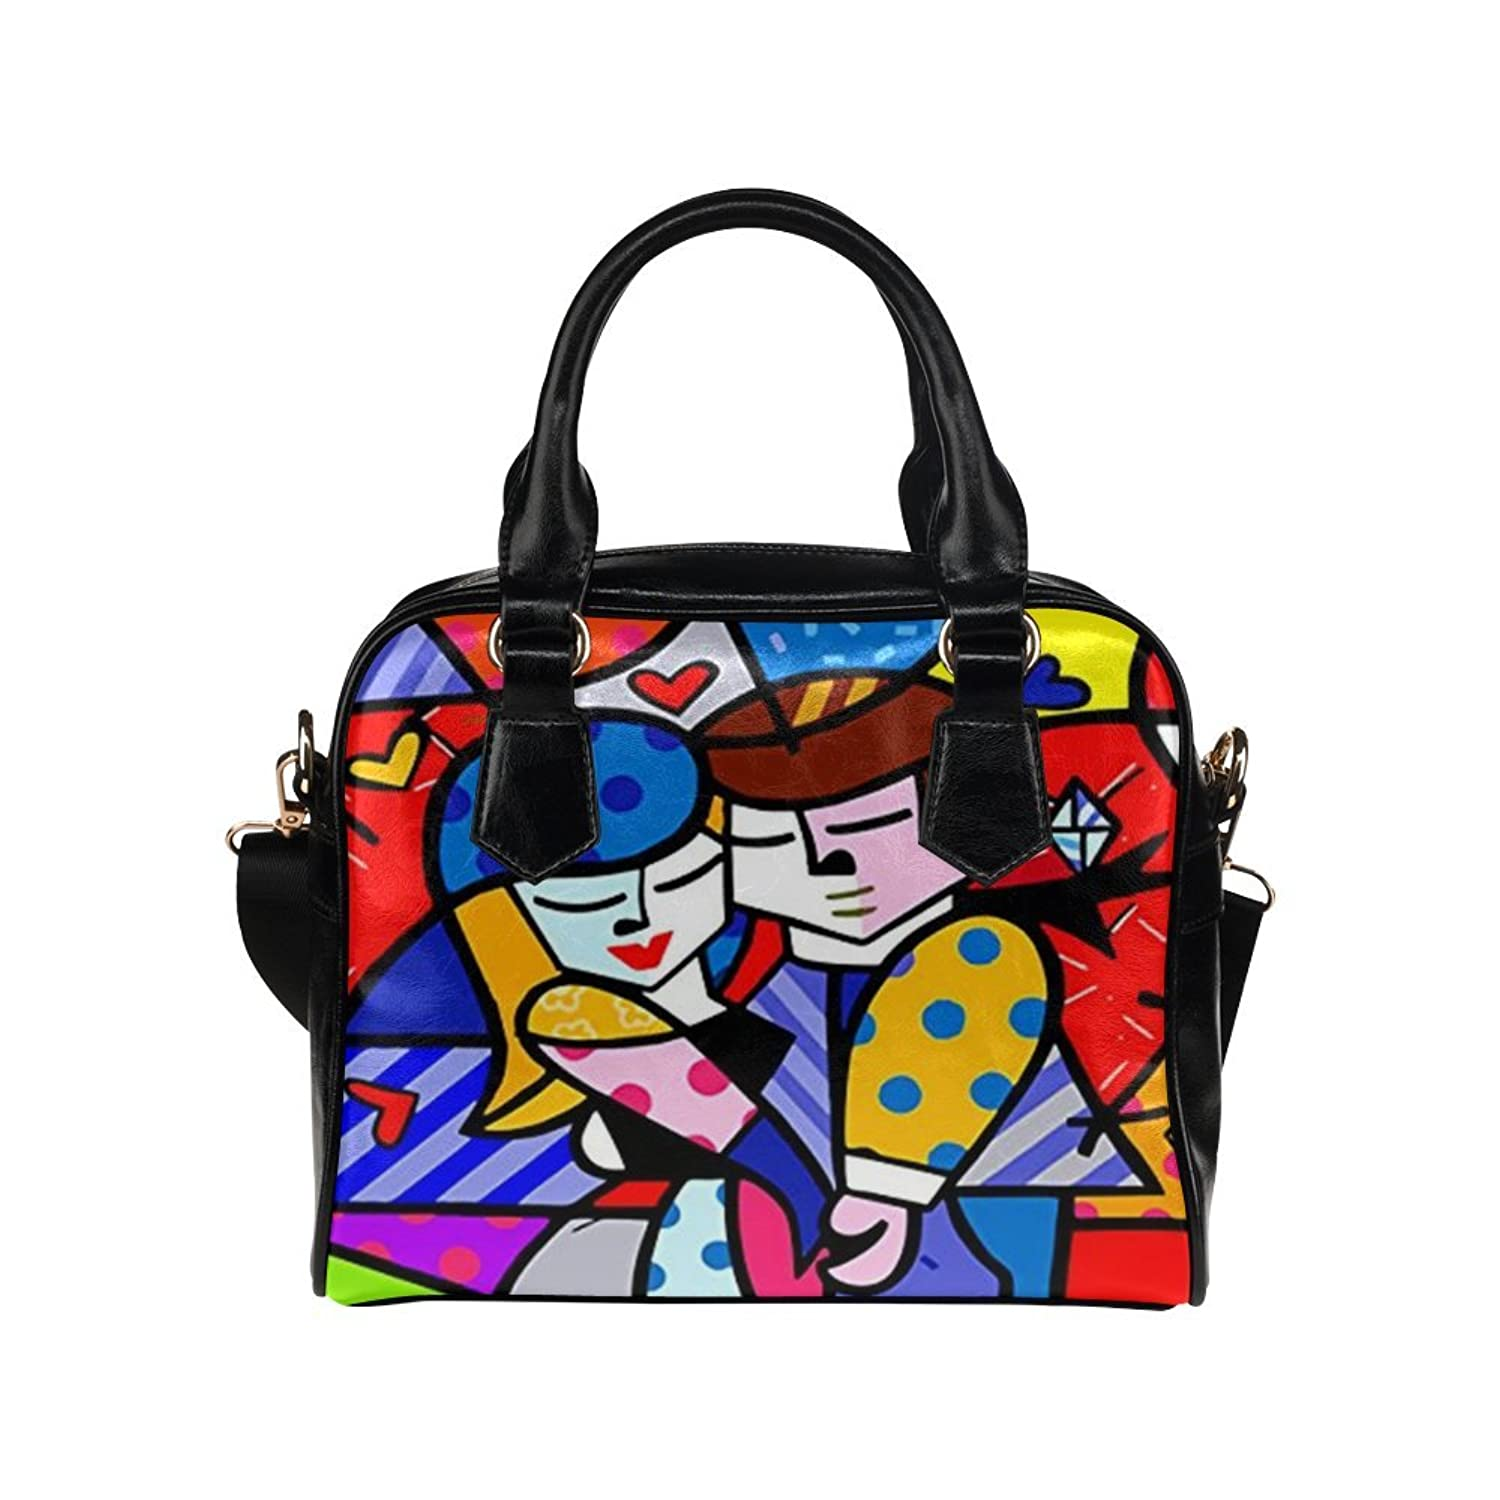 Angelinana Custom Women's Handbag Romero Britto6 Fashion Shoulder Bag